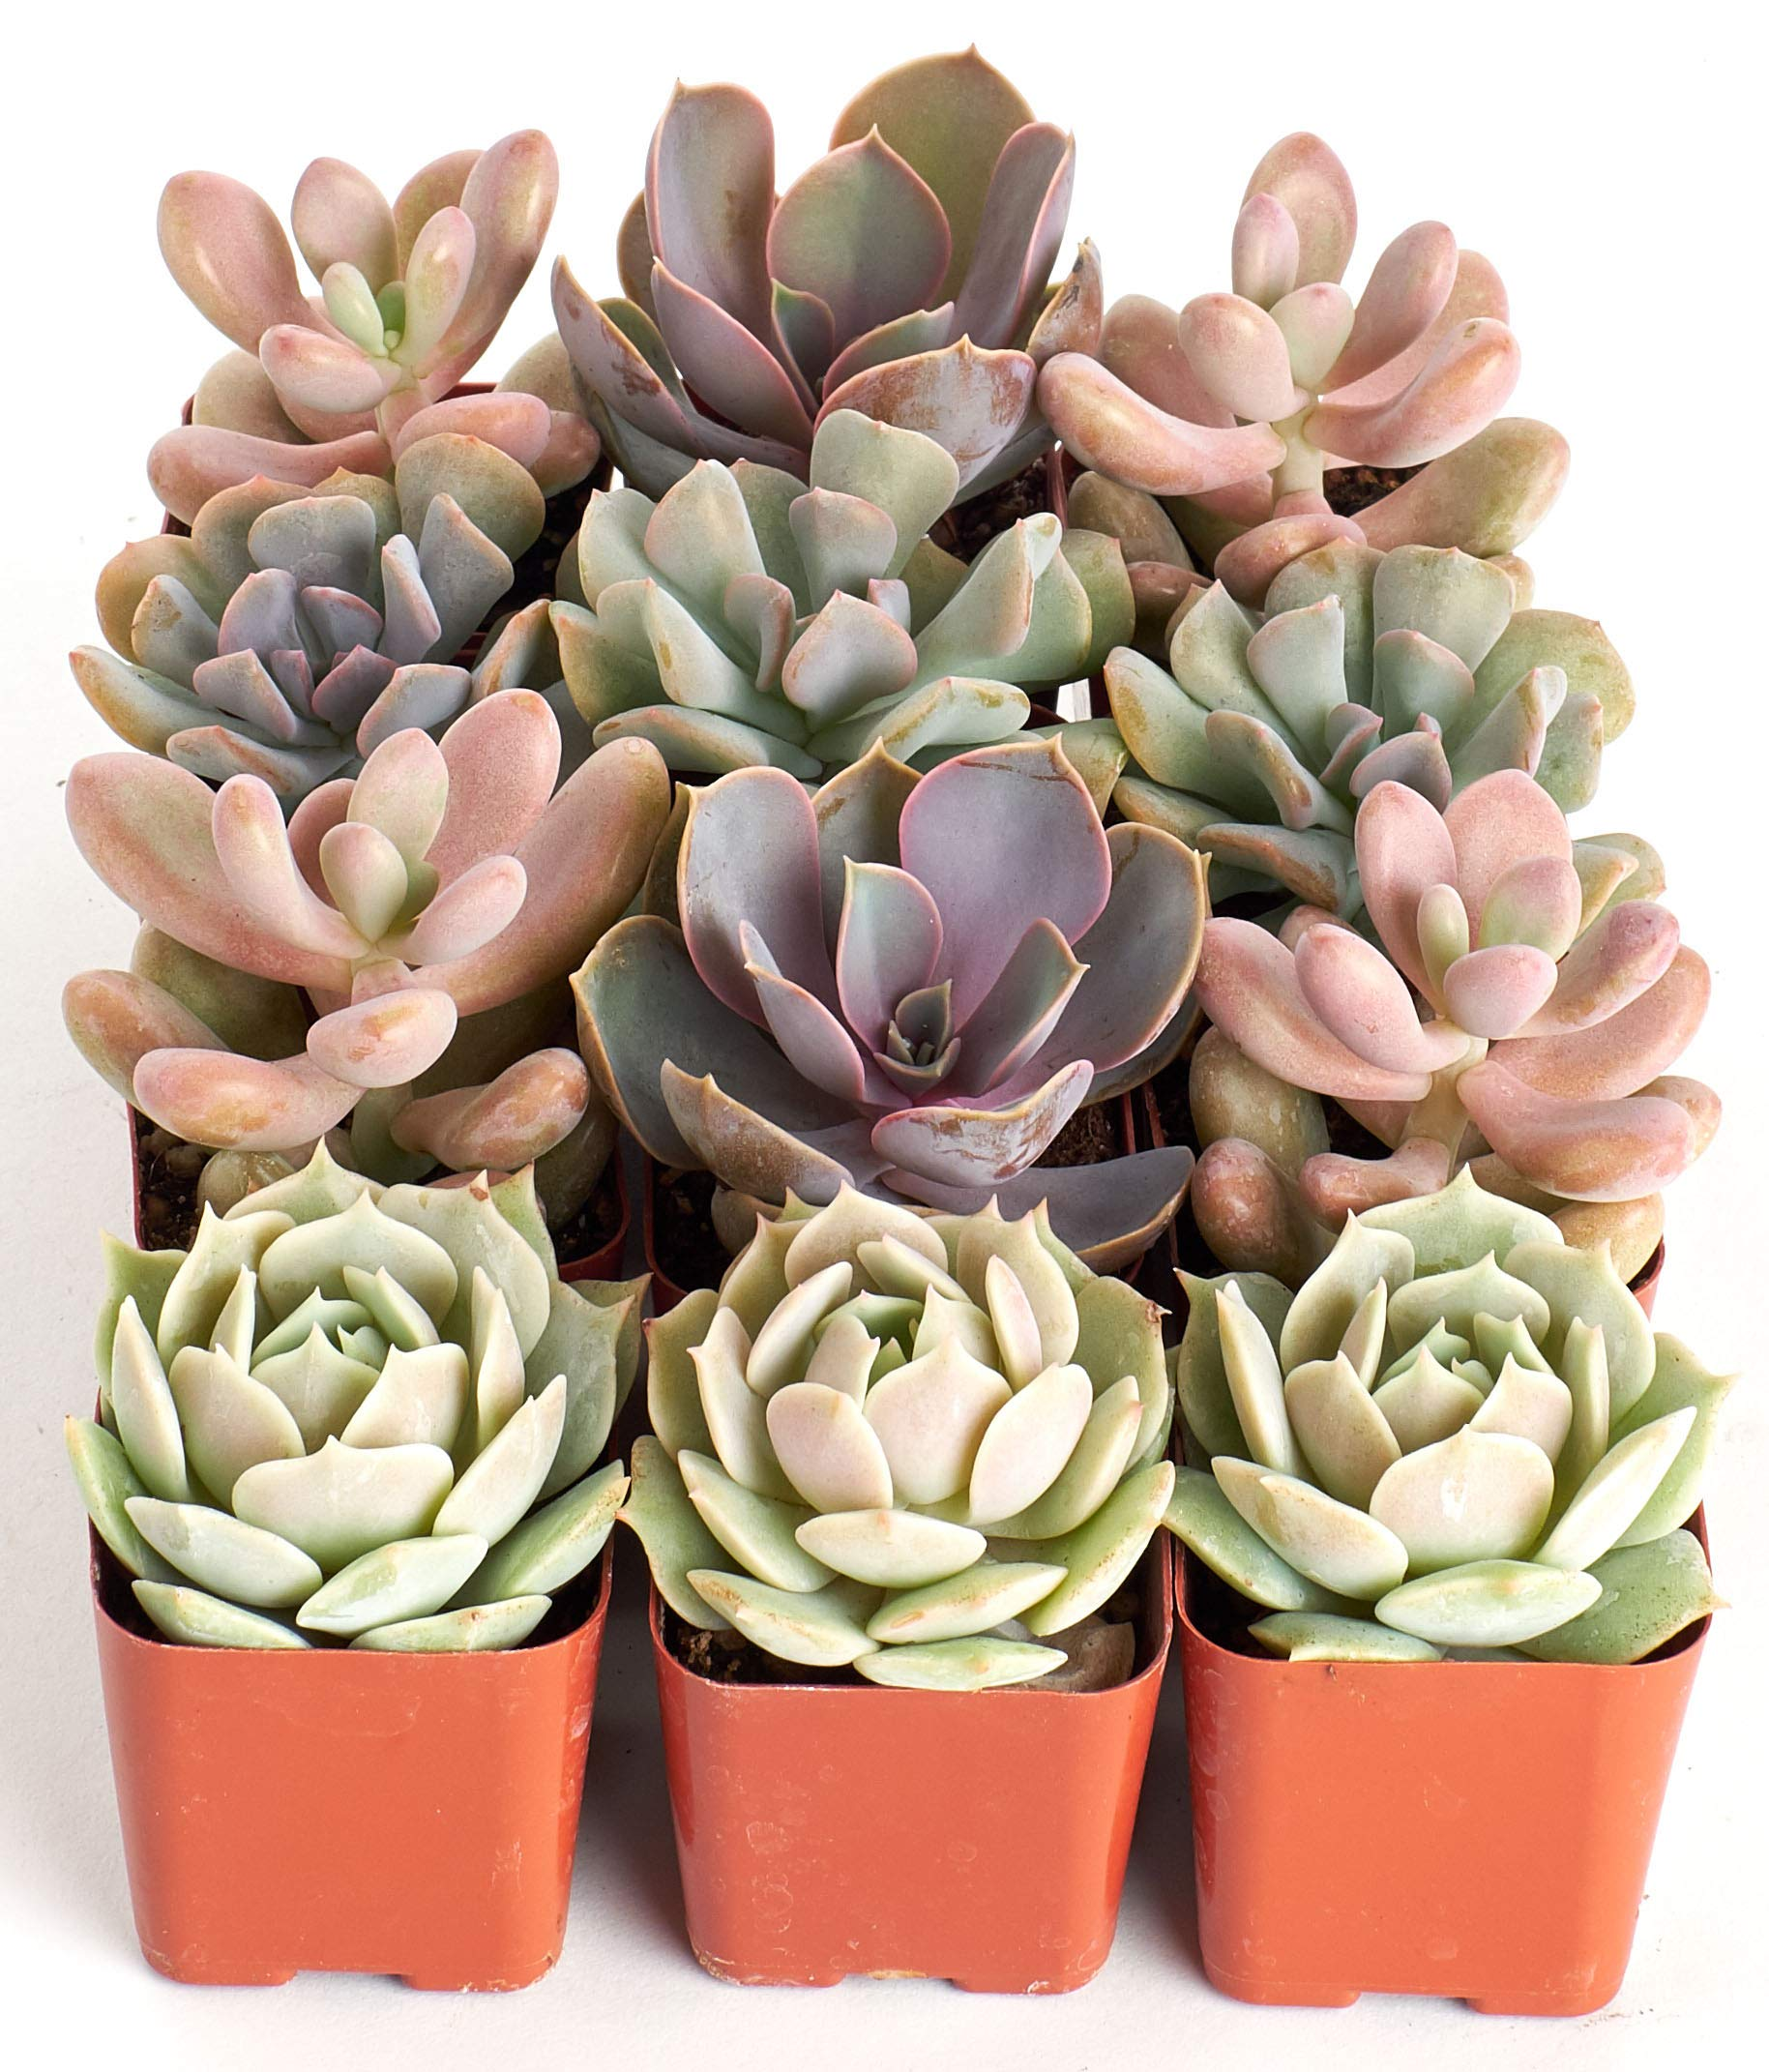 Shop Succulents | It's A Girl! Pink Collection of Live Succulent Plants, Hand Selected Variety Pack of Mini Succulents in Pastel Pink Colors | Collection of 12 by Shop Succulents